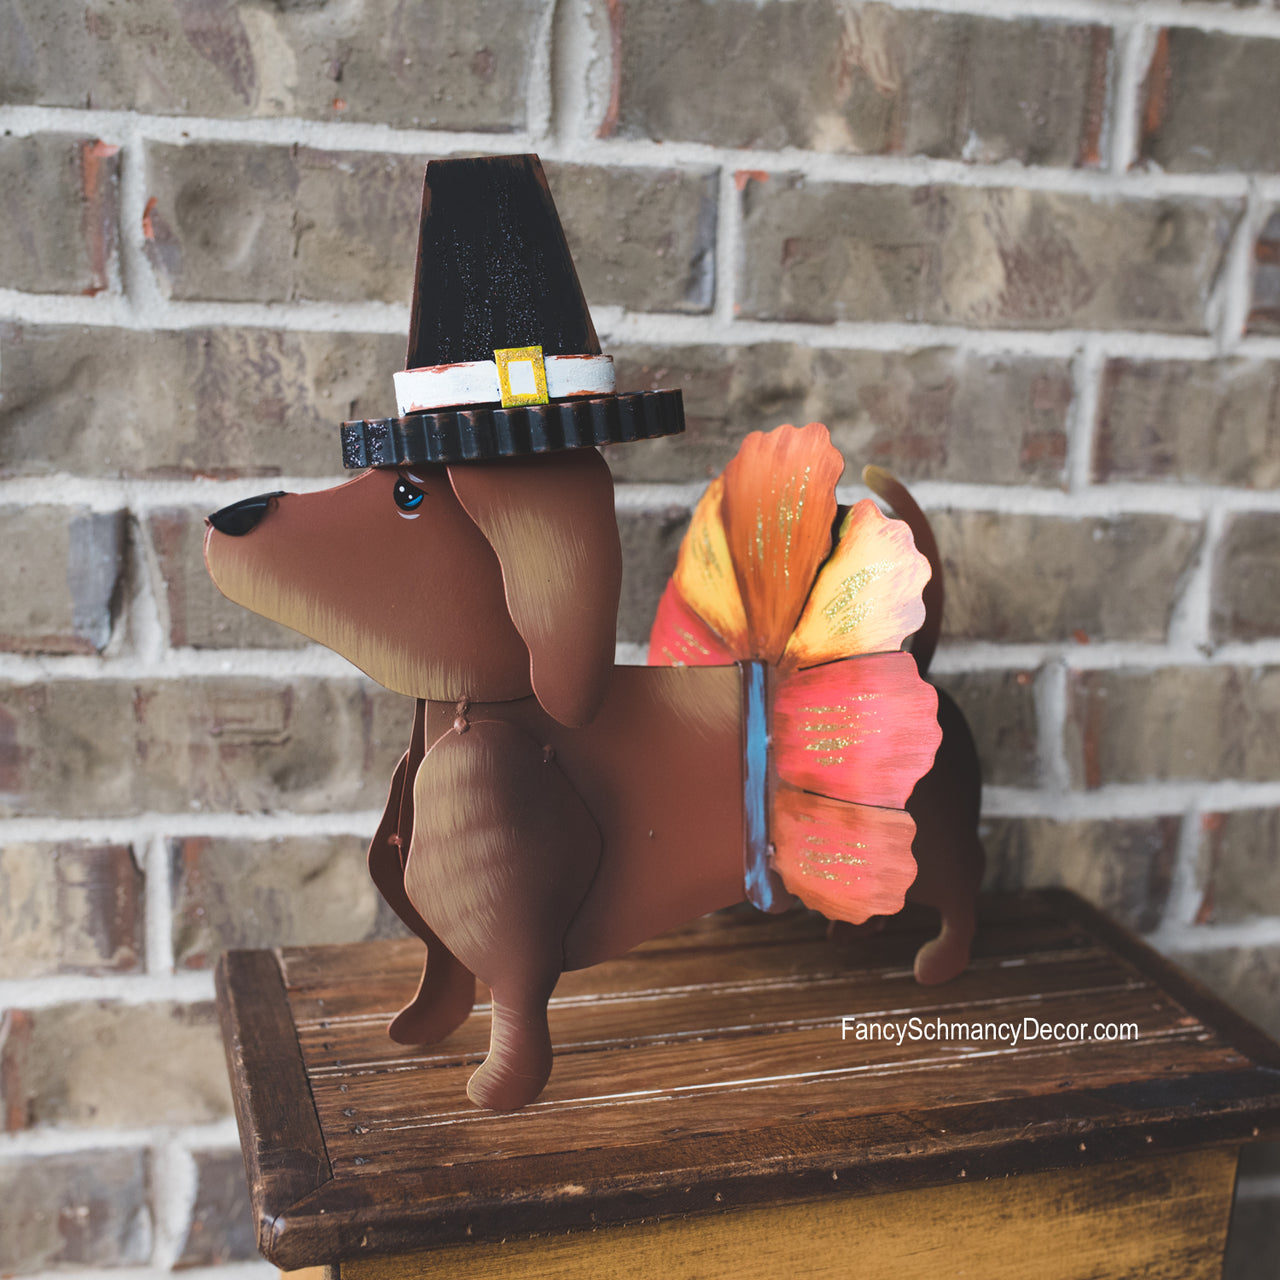 Dress-up Dachshund Pilgrim Turkey